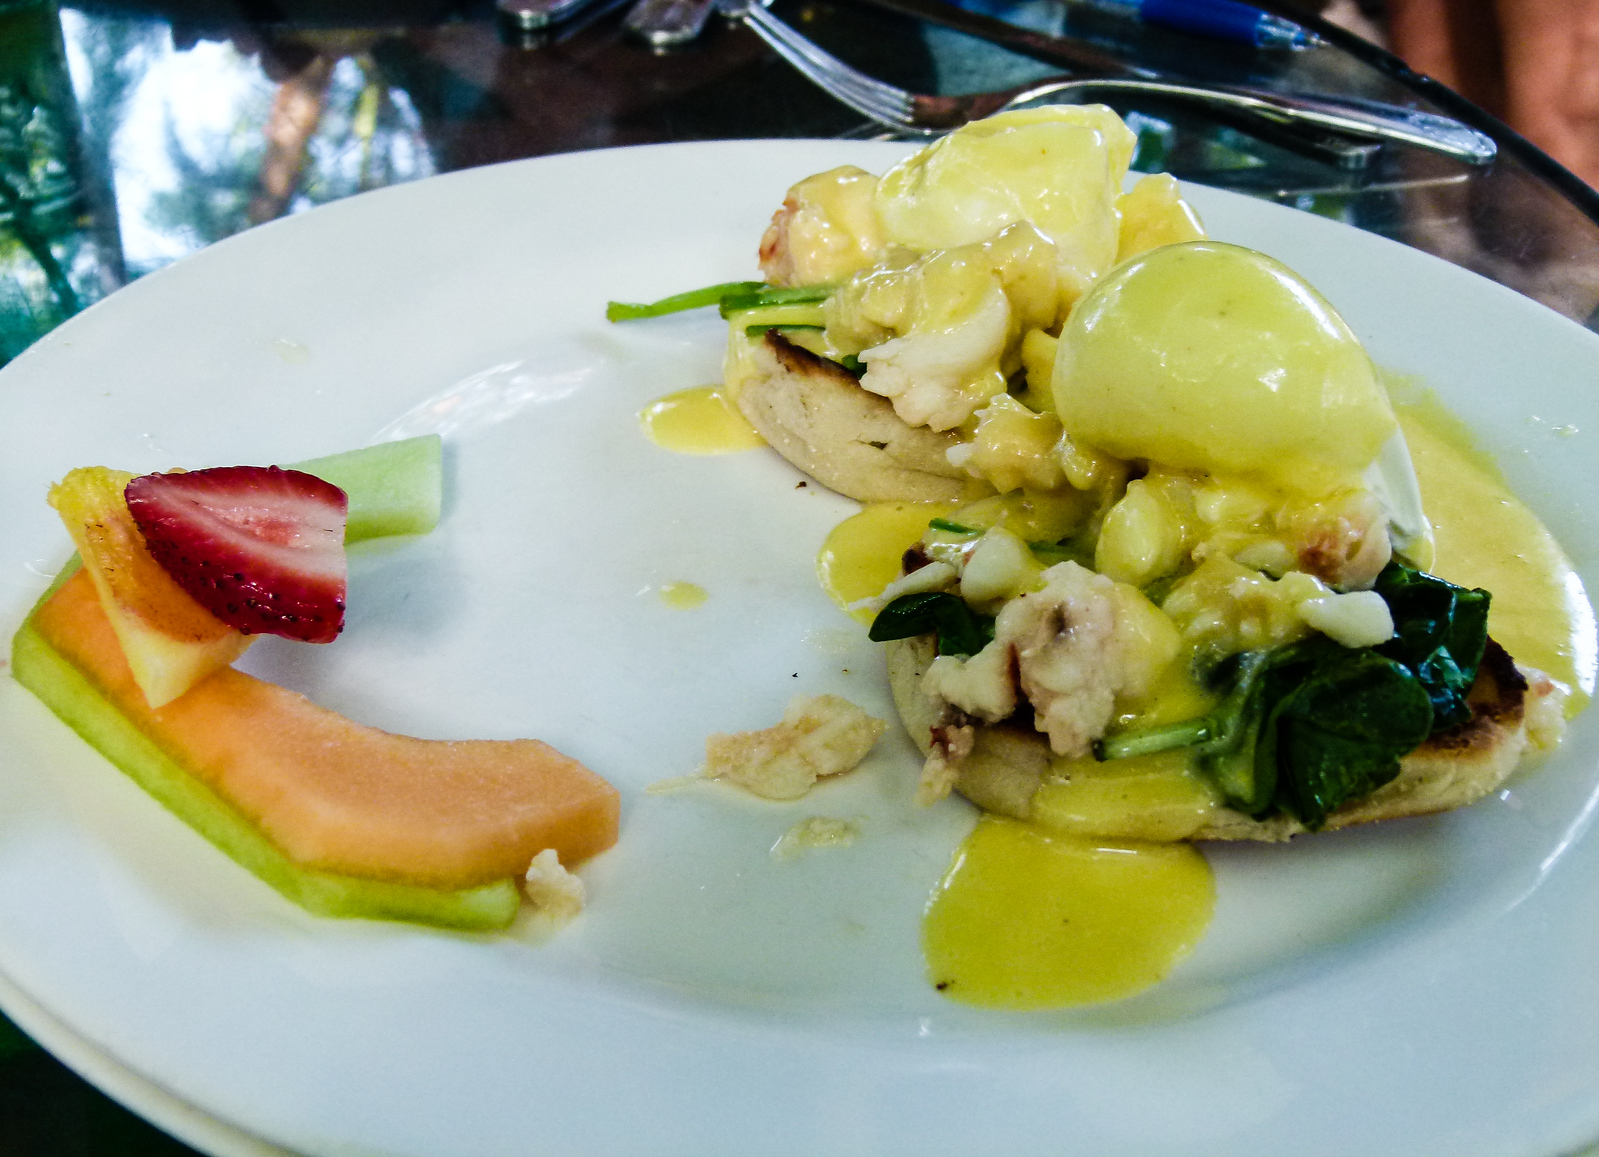 Lobster Benedict from Blue Heaven is a tasty way to start out the day in Key West, Florida.